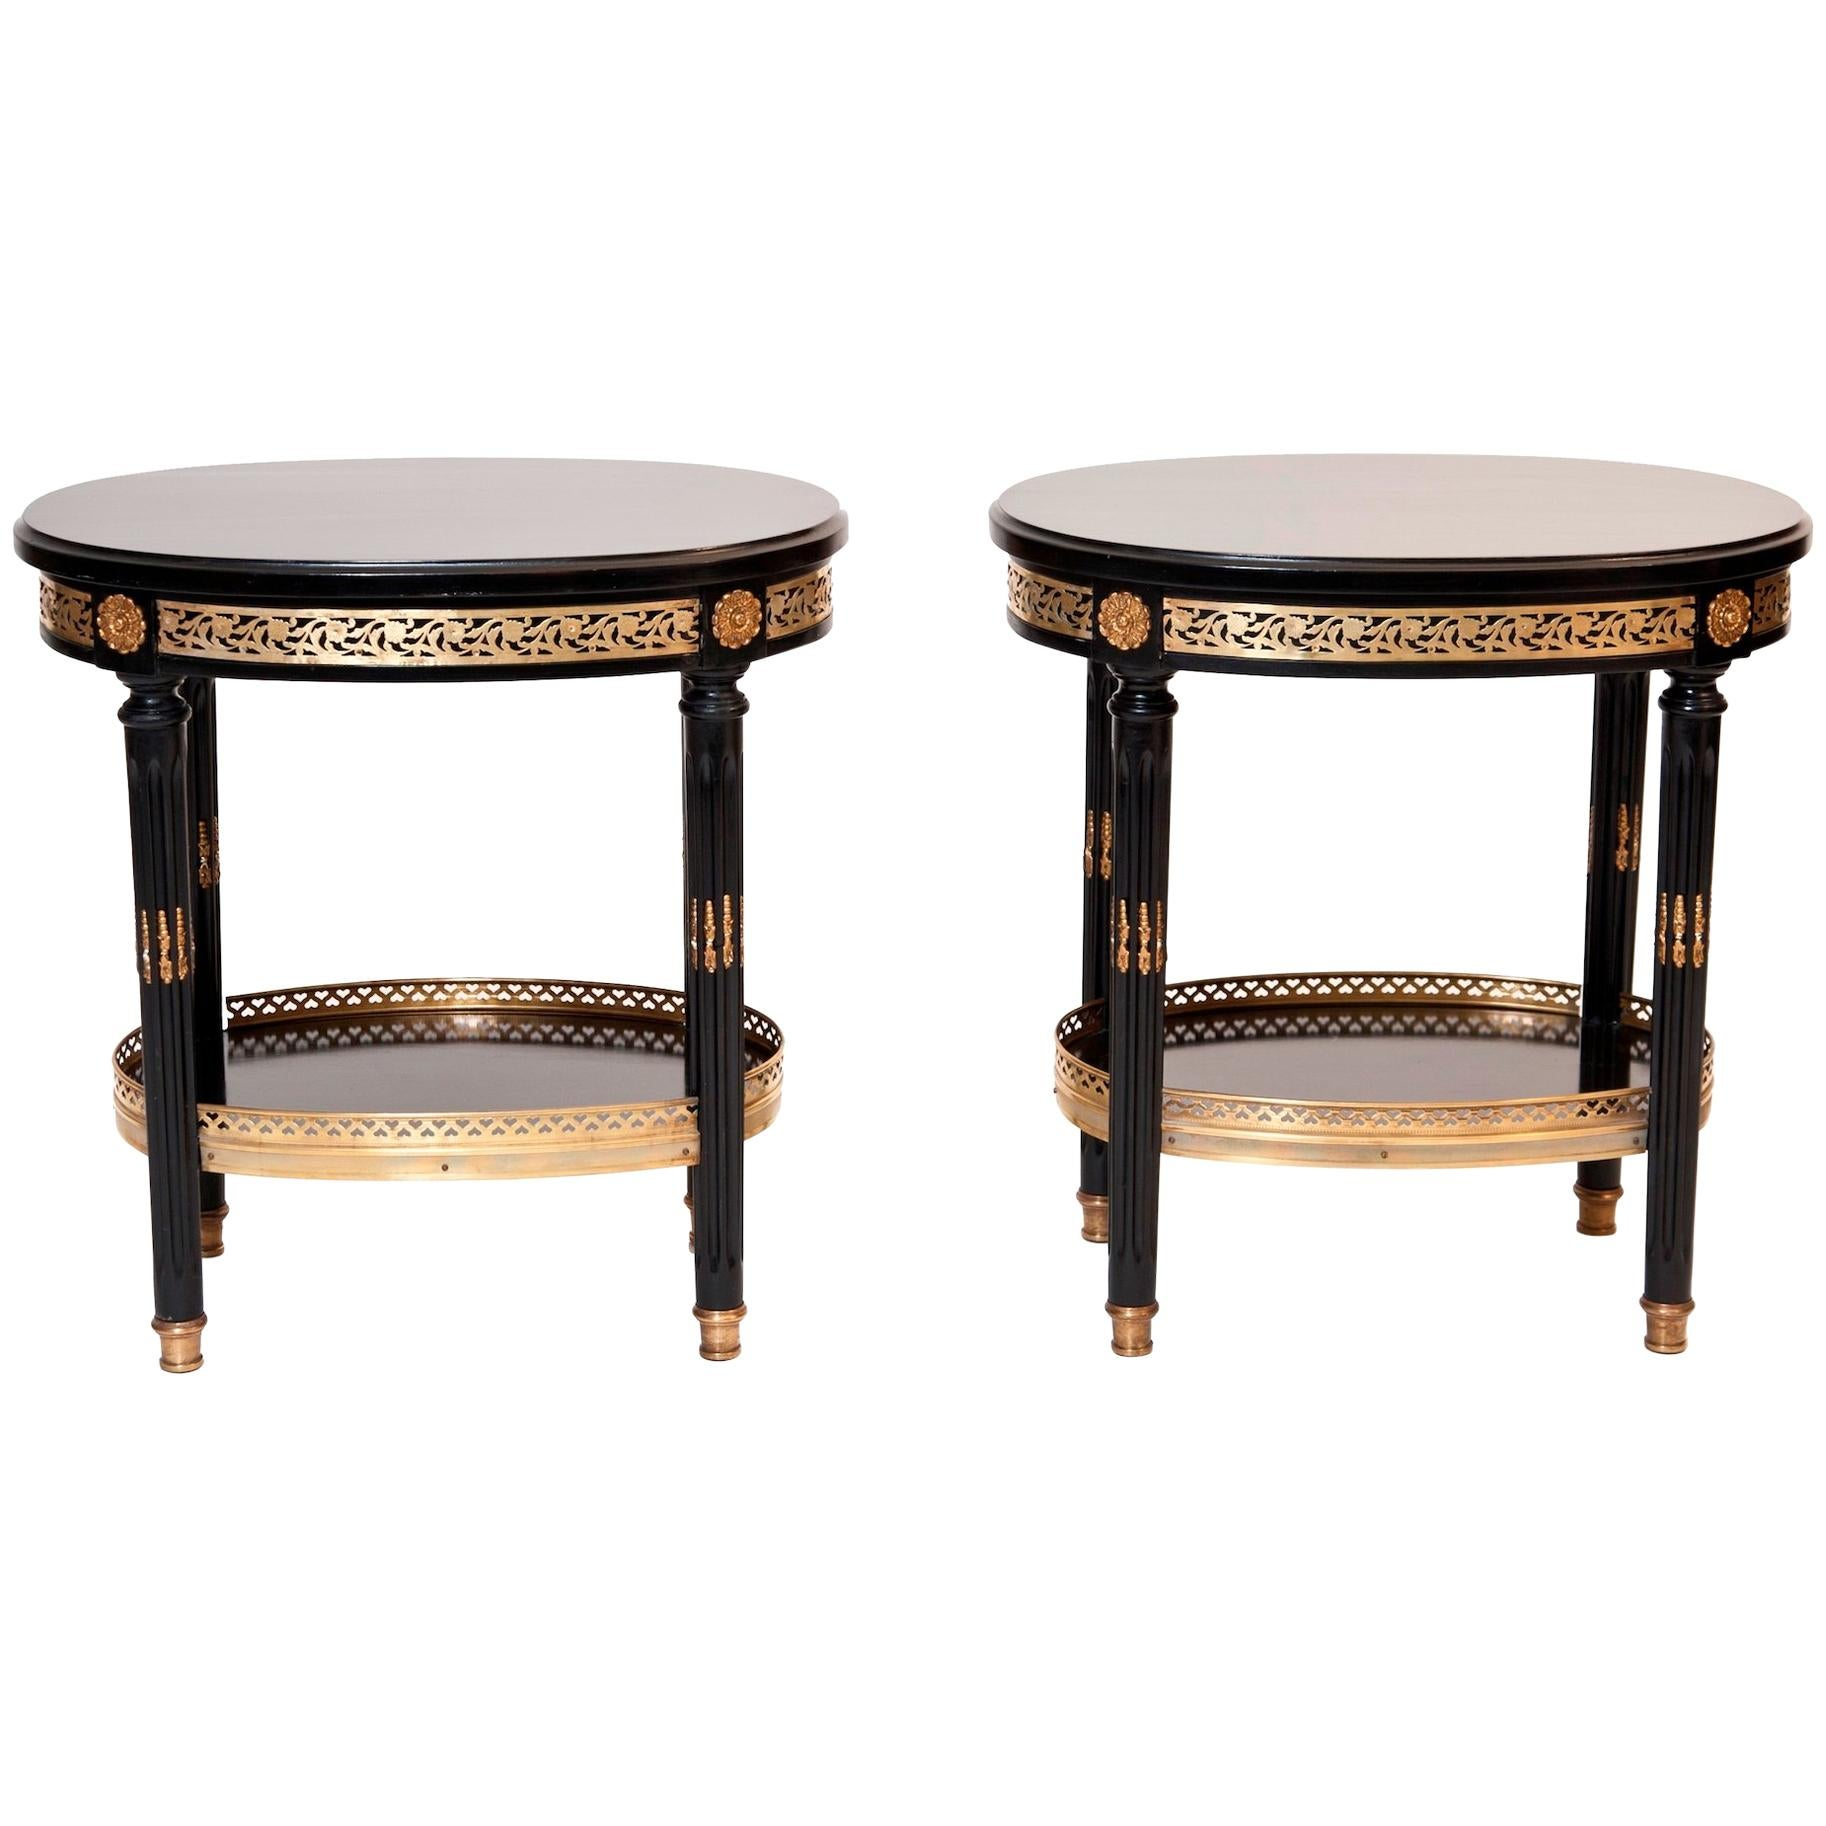 Maison Jansen Pair of Stamped Side Tables, French